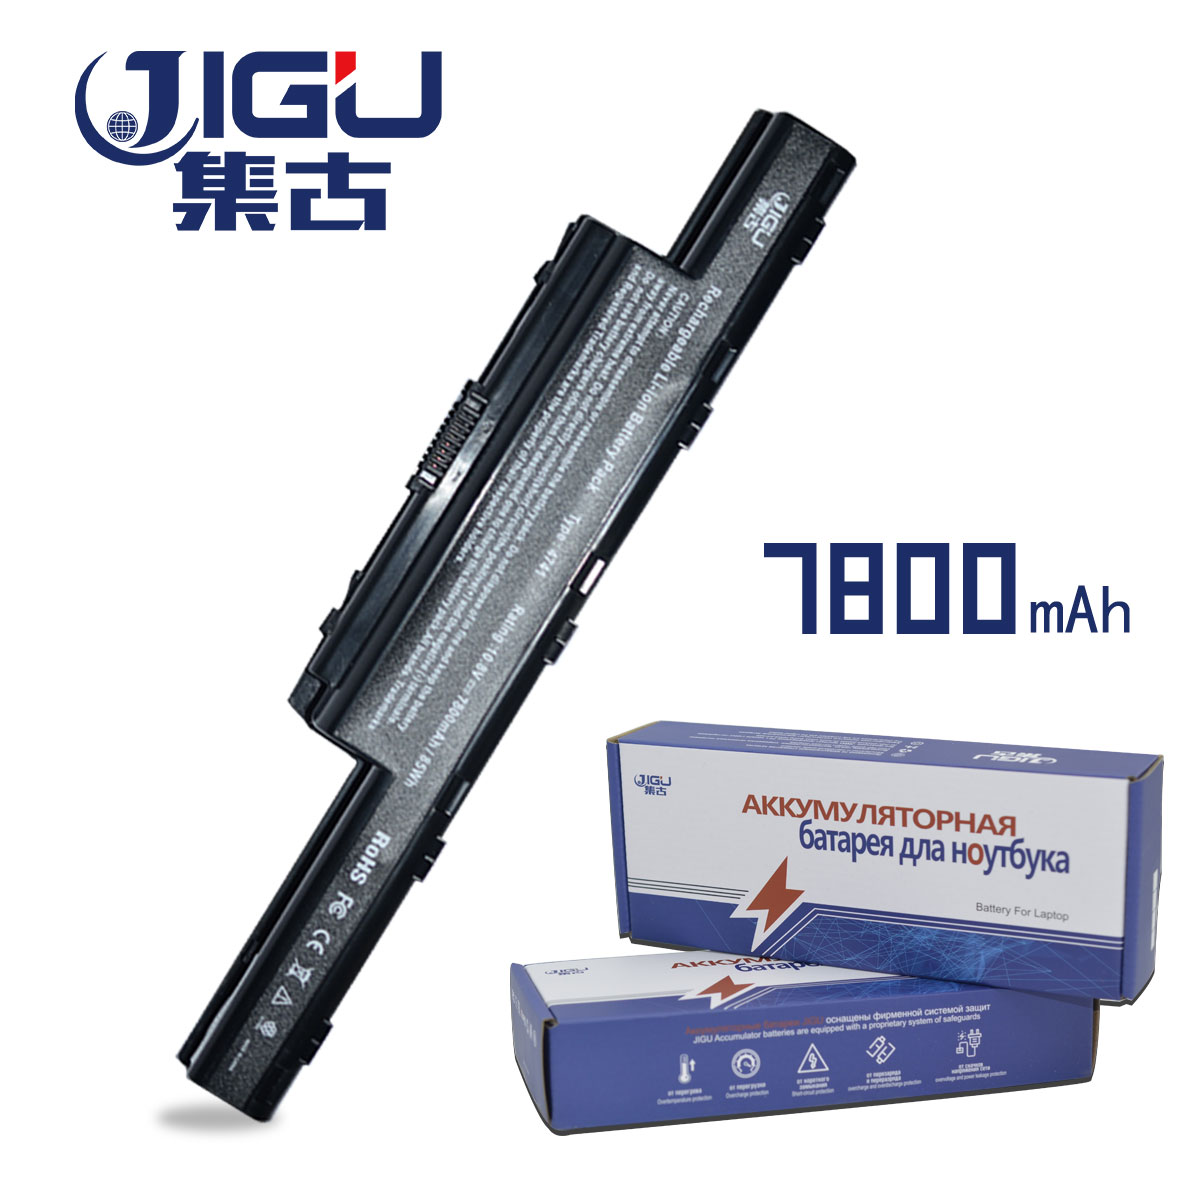 JIGU 7750g NEW Laptop Battery For Acer Aspire V3 V3-471G V3-551G V3-571G V3-771G E1 E1-421 E1-431 E1-471 E1-531 E1-571 Series 20 sets mini micro jst 2 0 ph 7 pin connector plug with wires cables 100mm 10cm